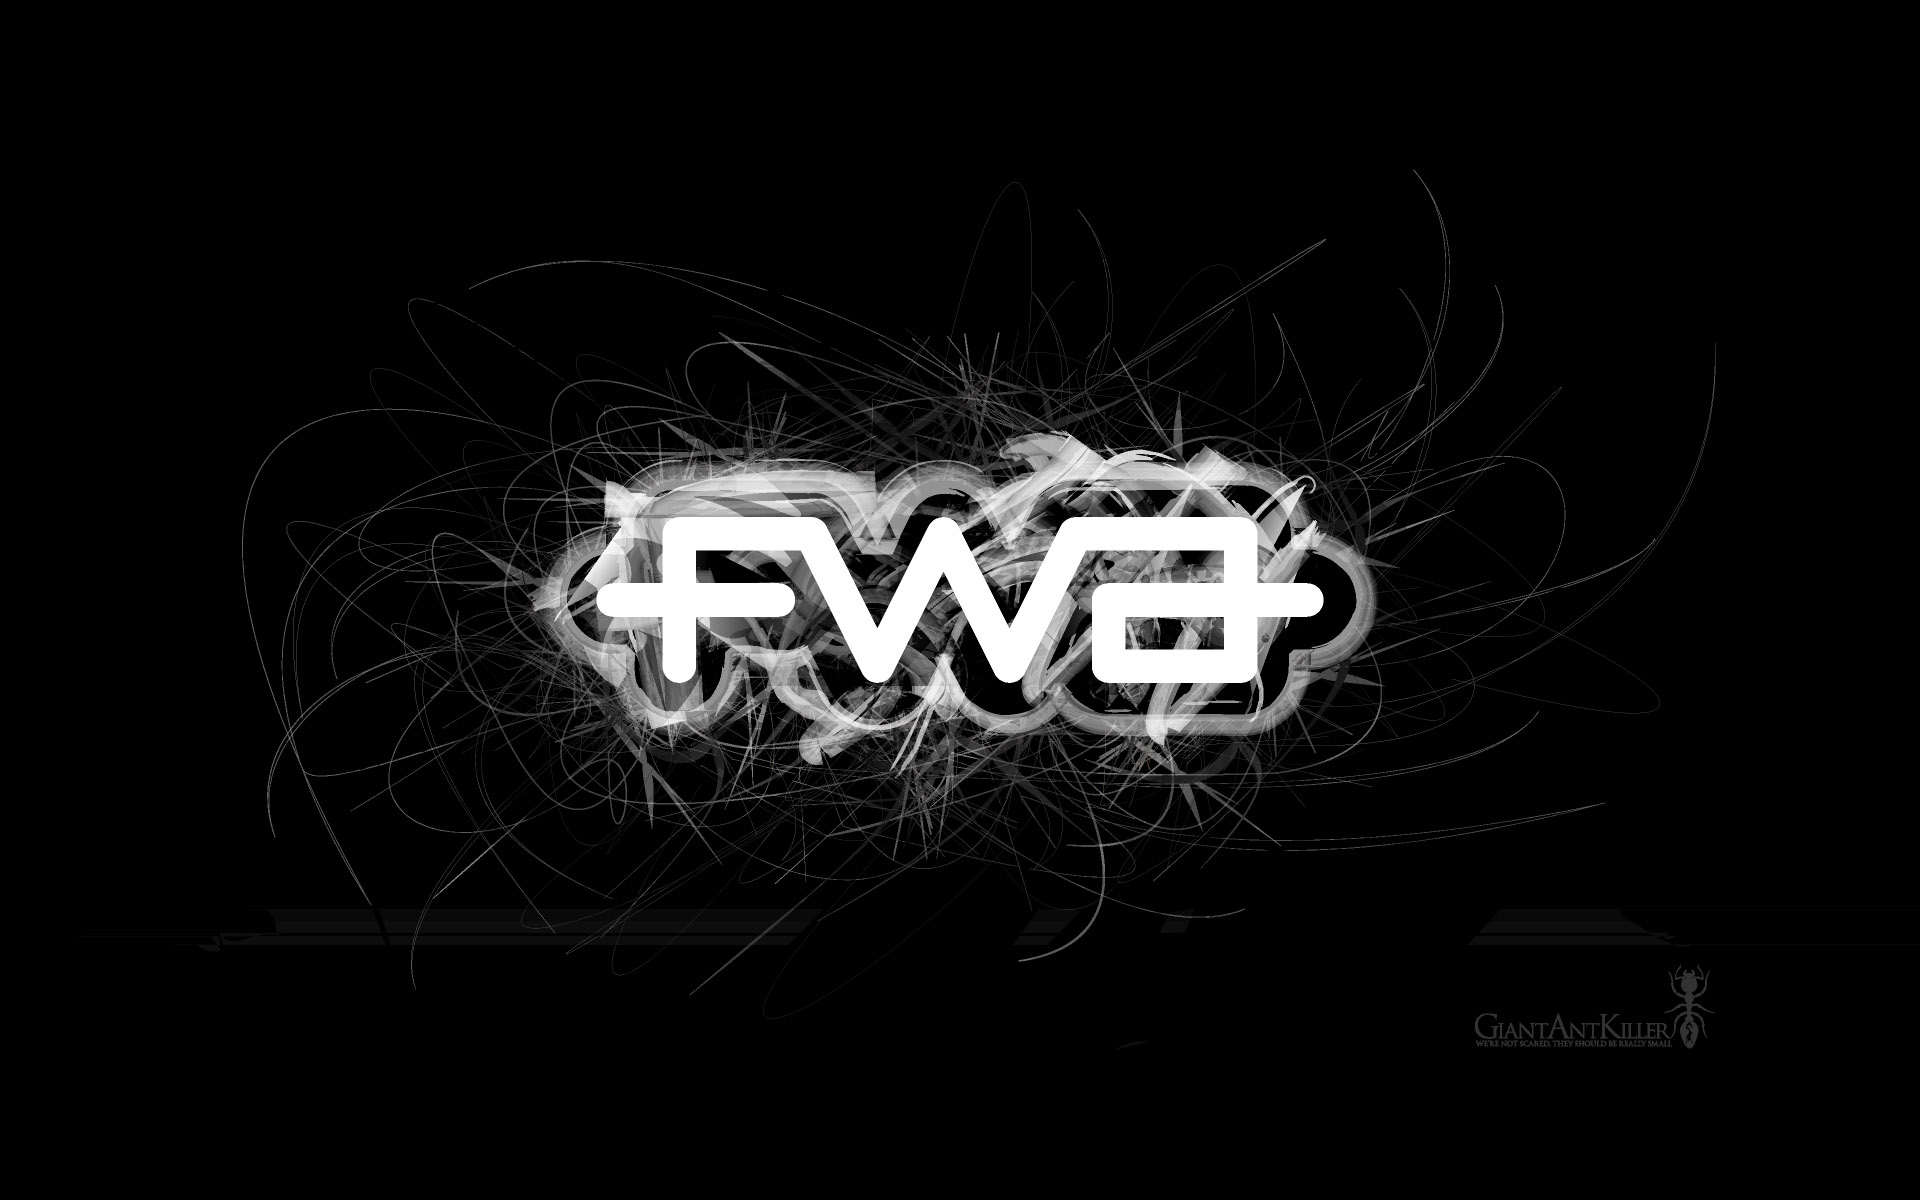 FWA wallpaper widescreen 23129